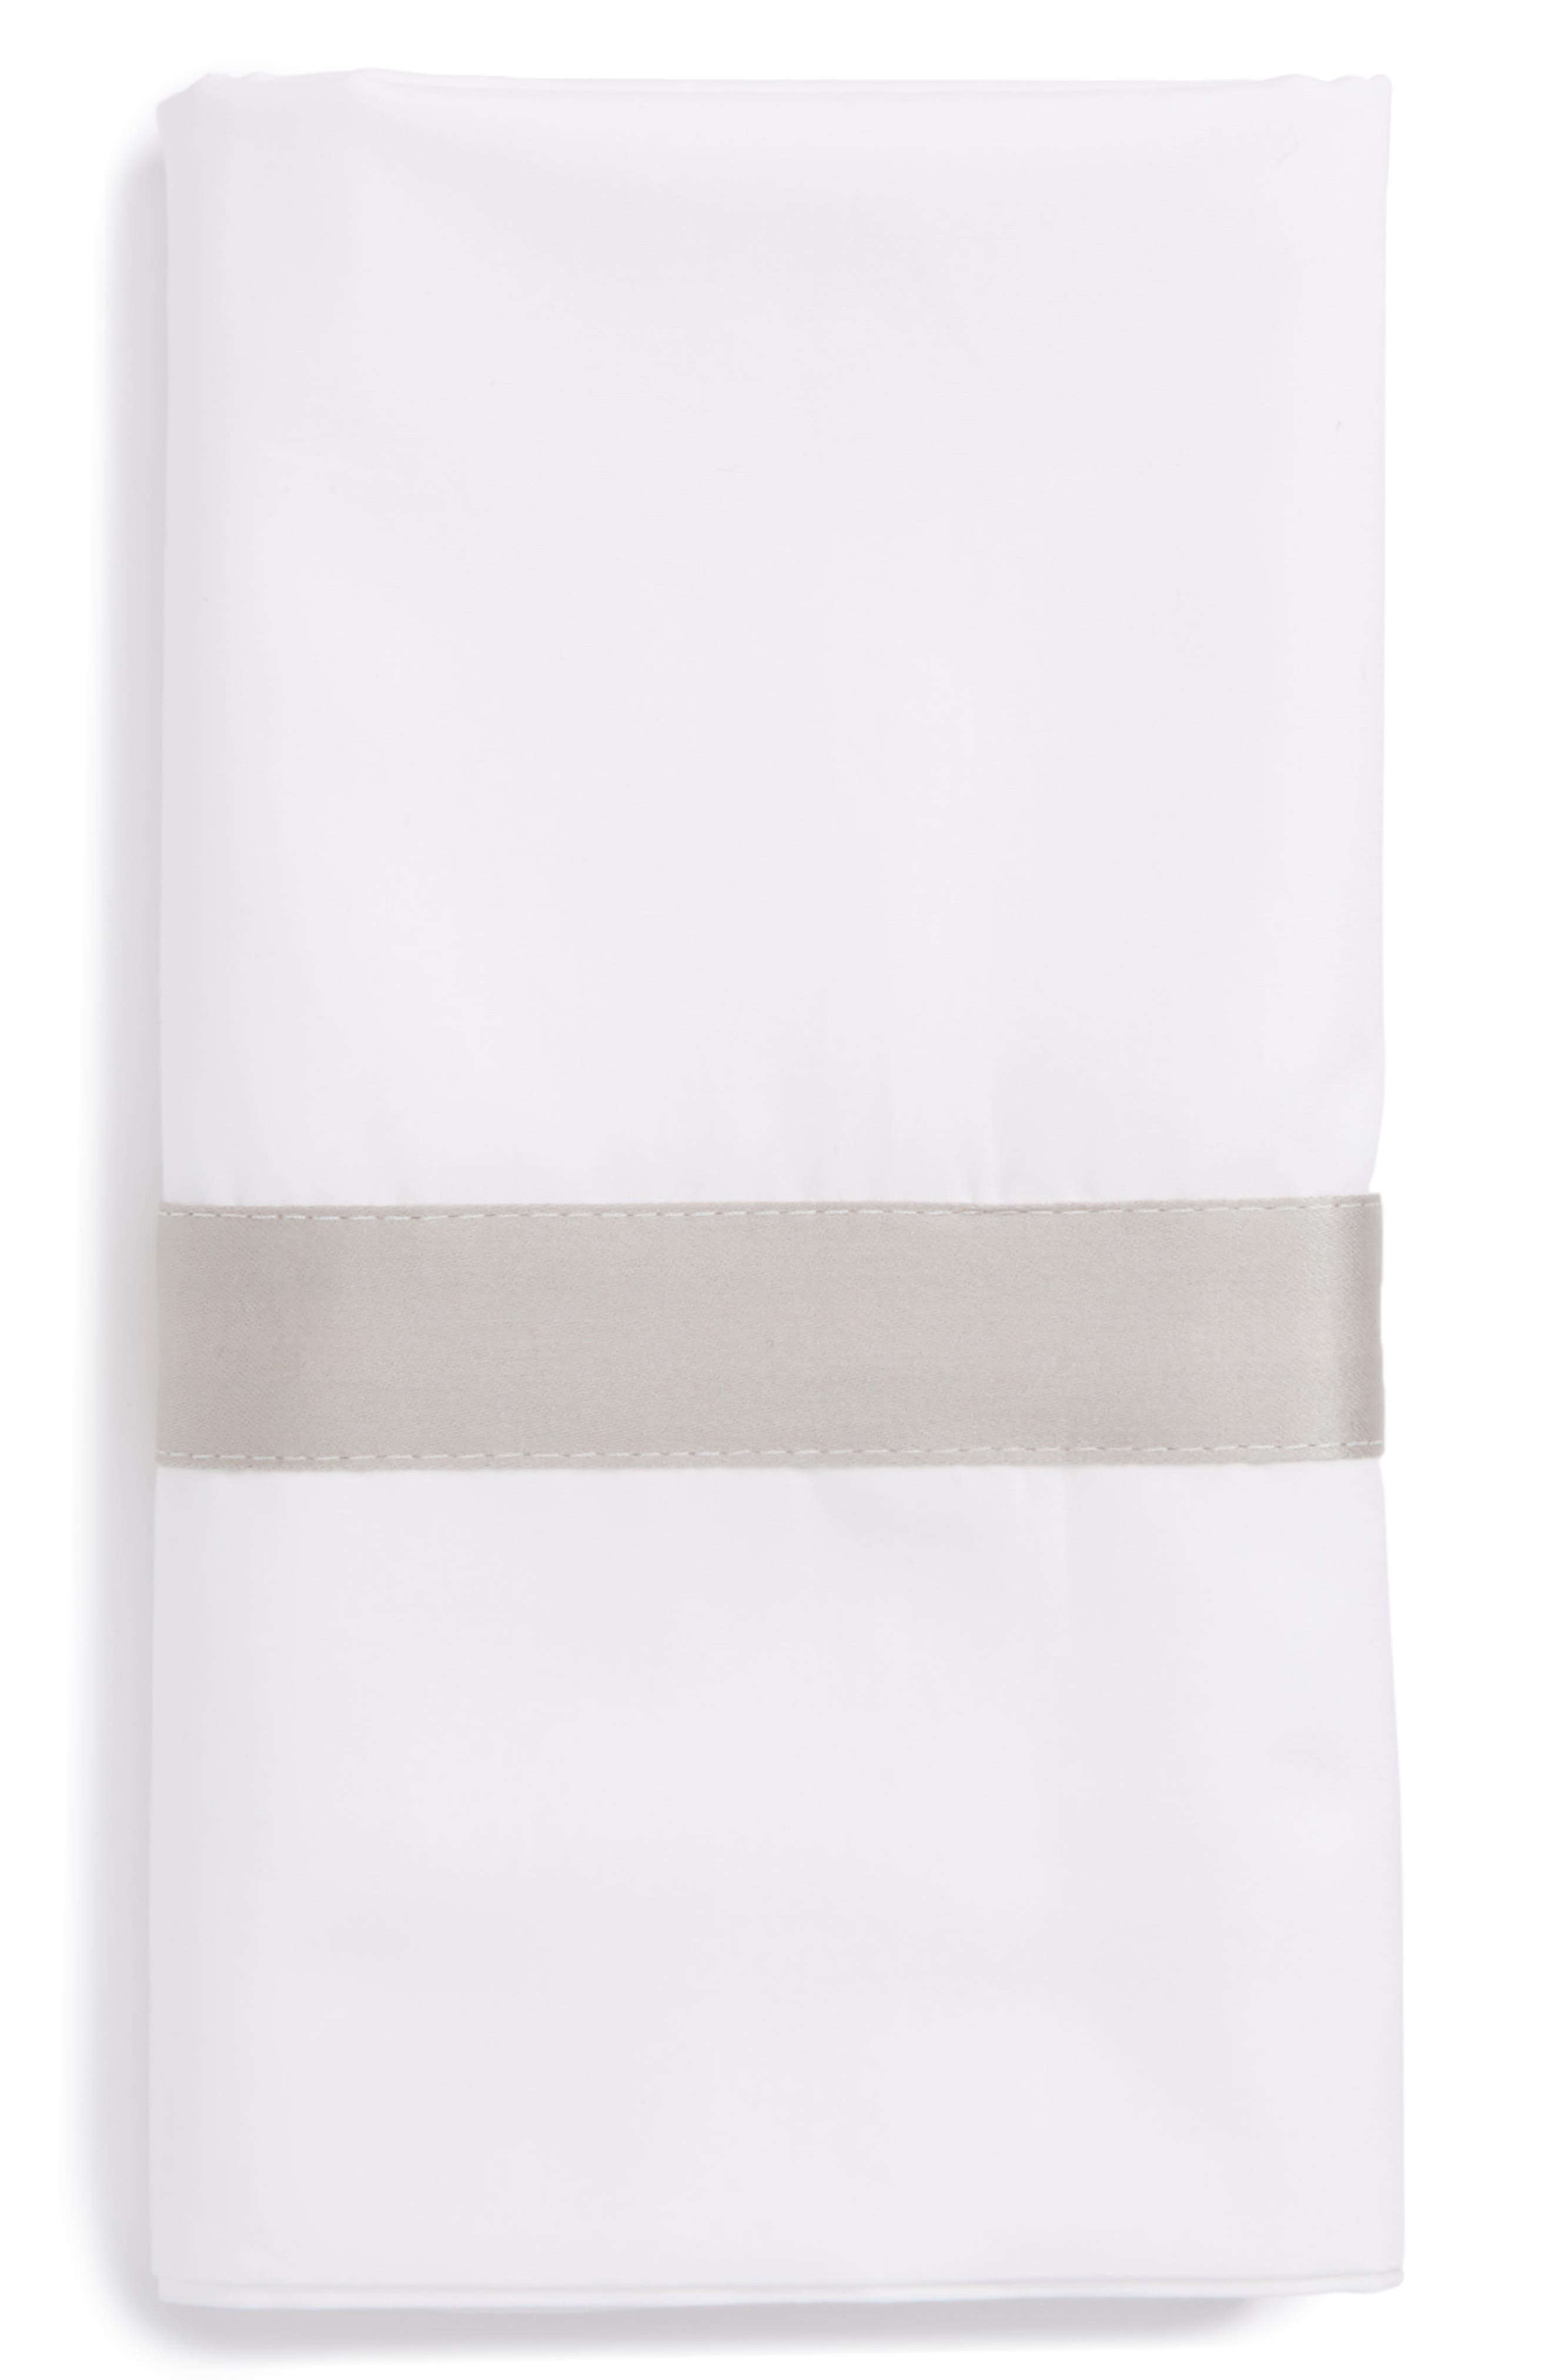 Main Image - Matouk Lowell 600 Thread Count Pillowcase